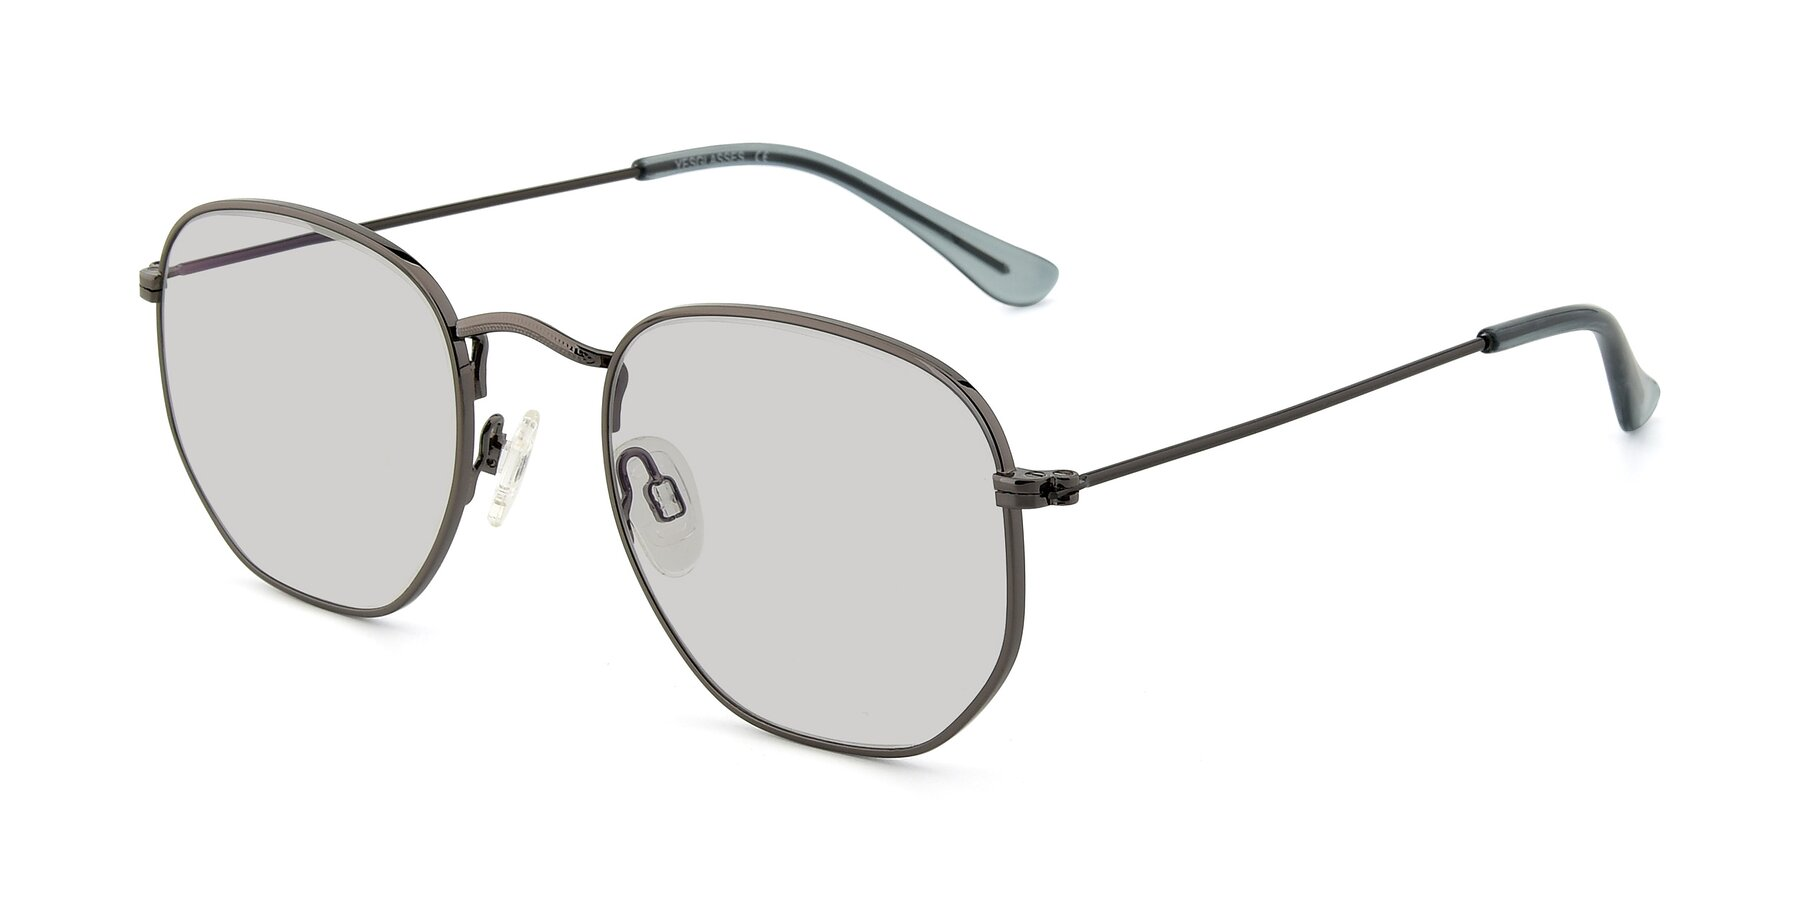 Angle of SSR1944 in Grey with Light Gray Tinted Lenses